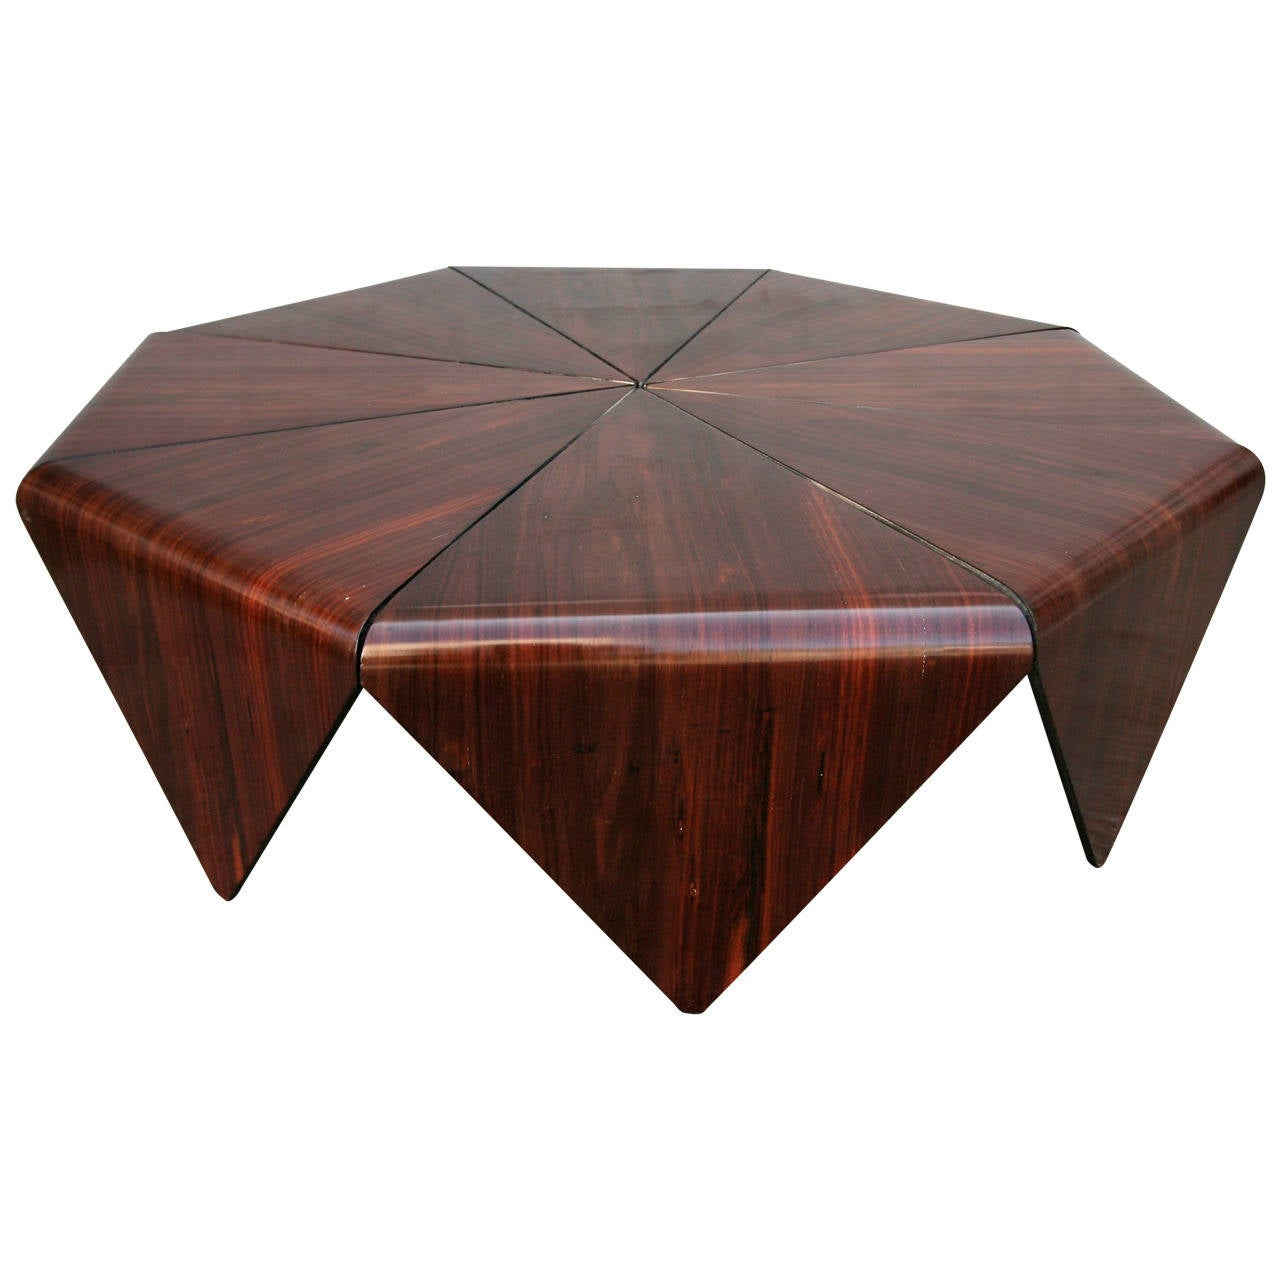 Petalas 1960s Coffee Table by Jorge Zalszupin in Brazilian Jacaranda 1